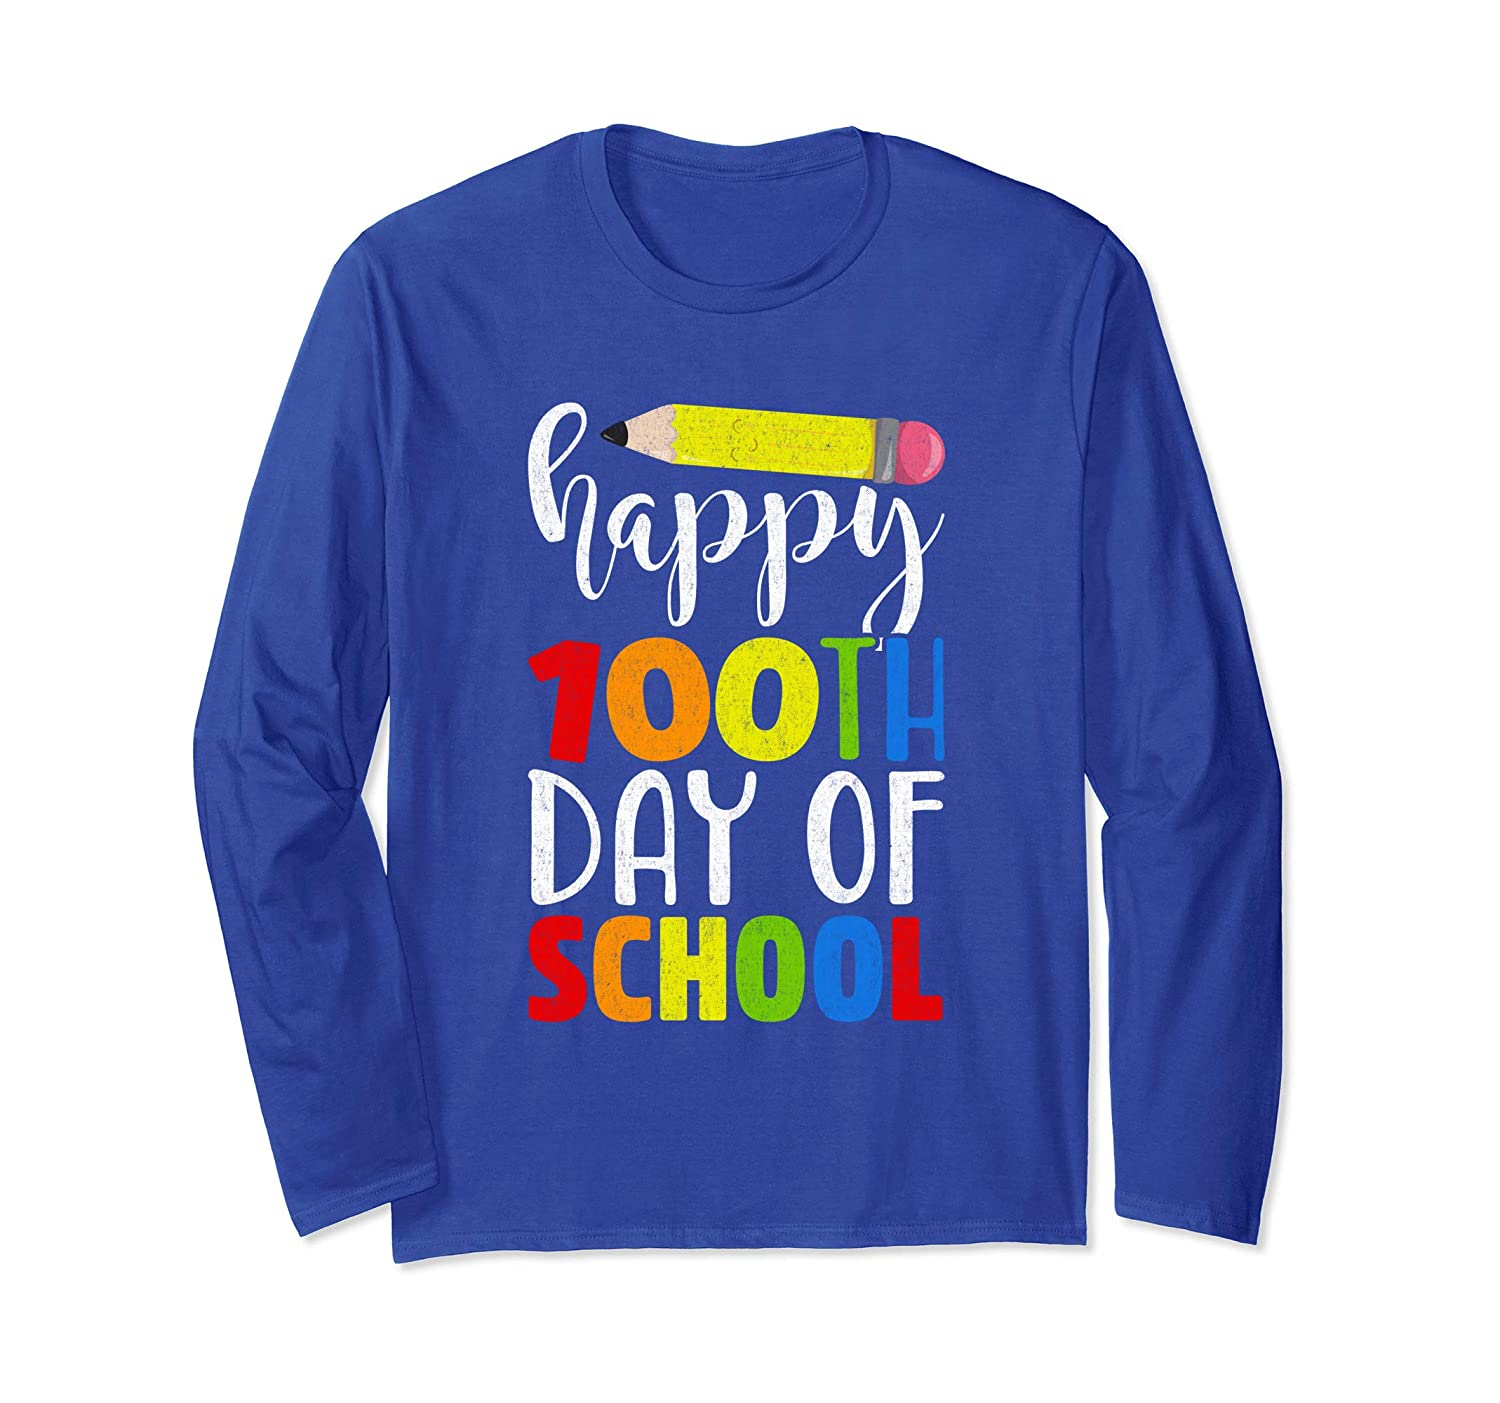 Happy 100th Day of School Shirt for Teacher or Child